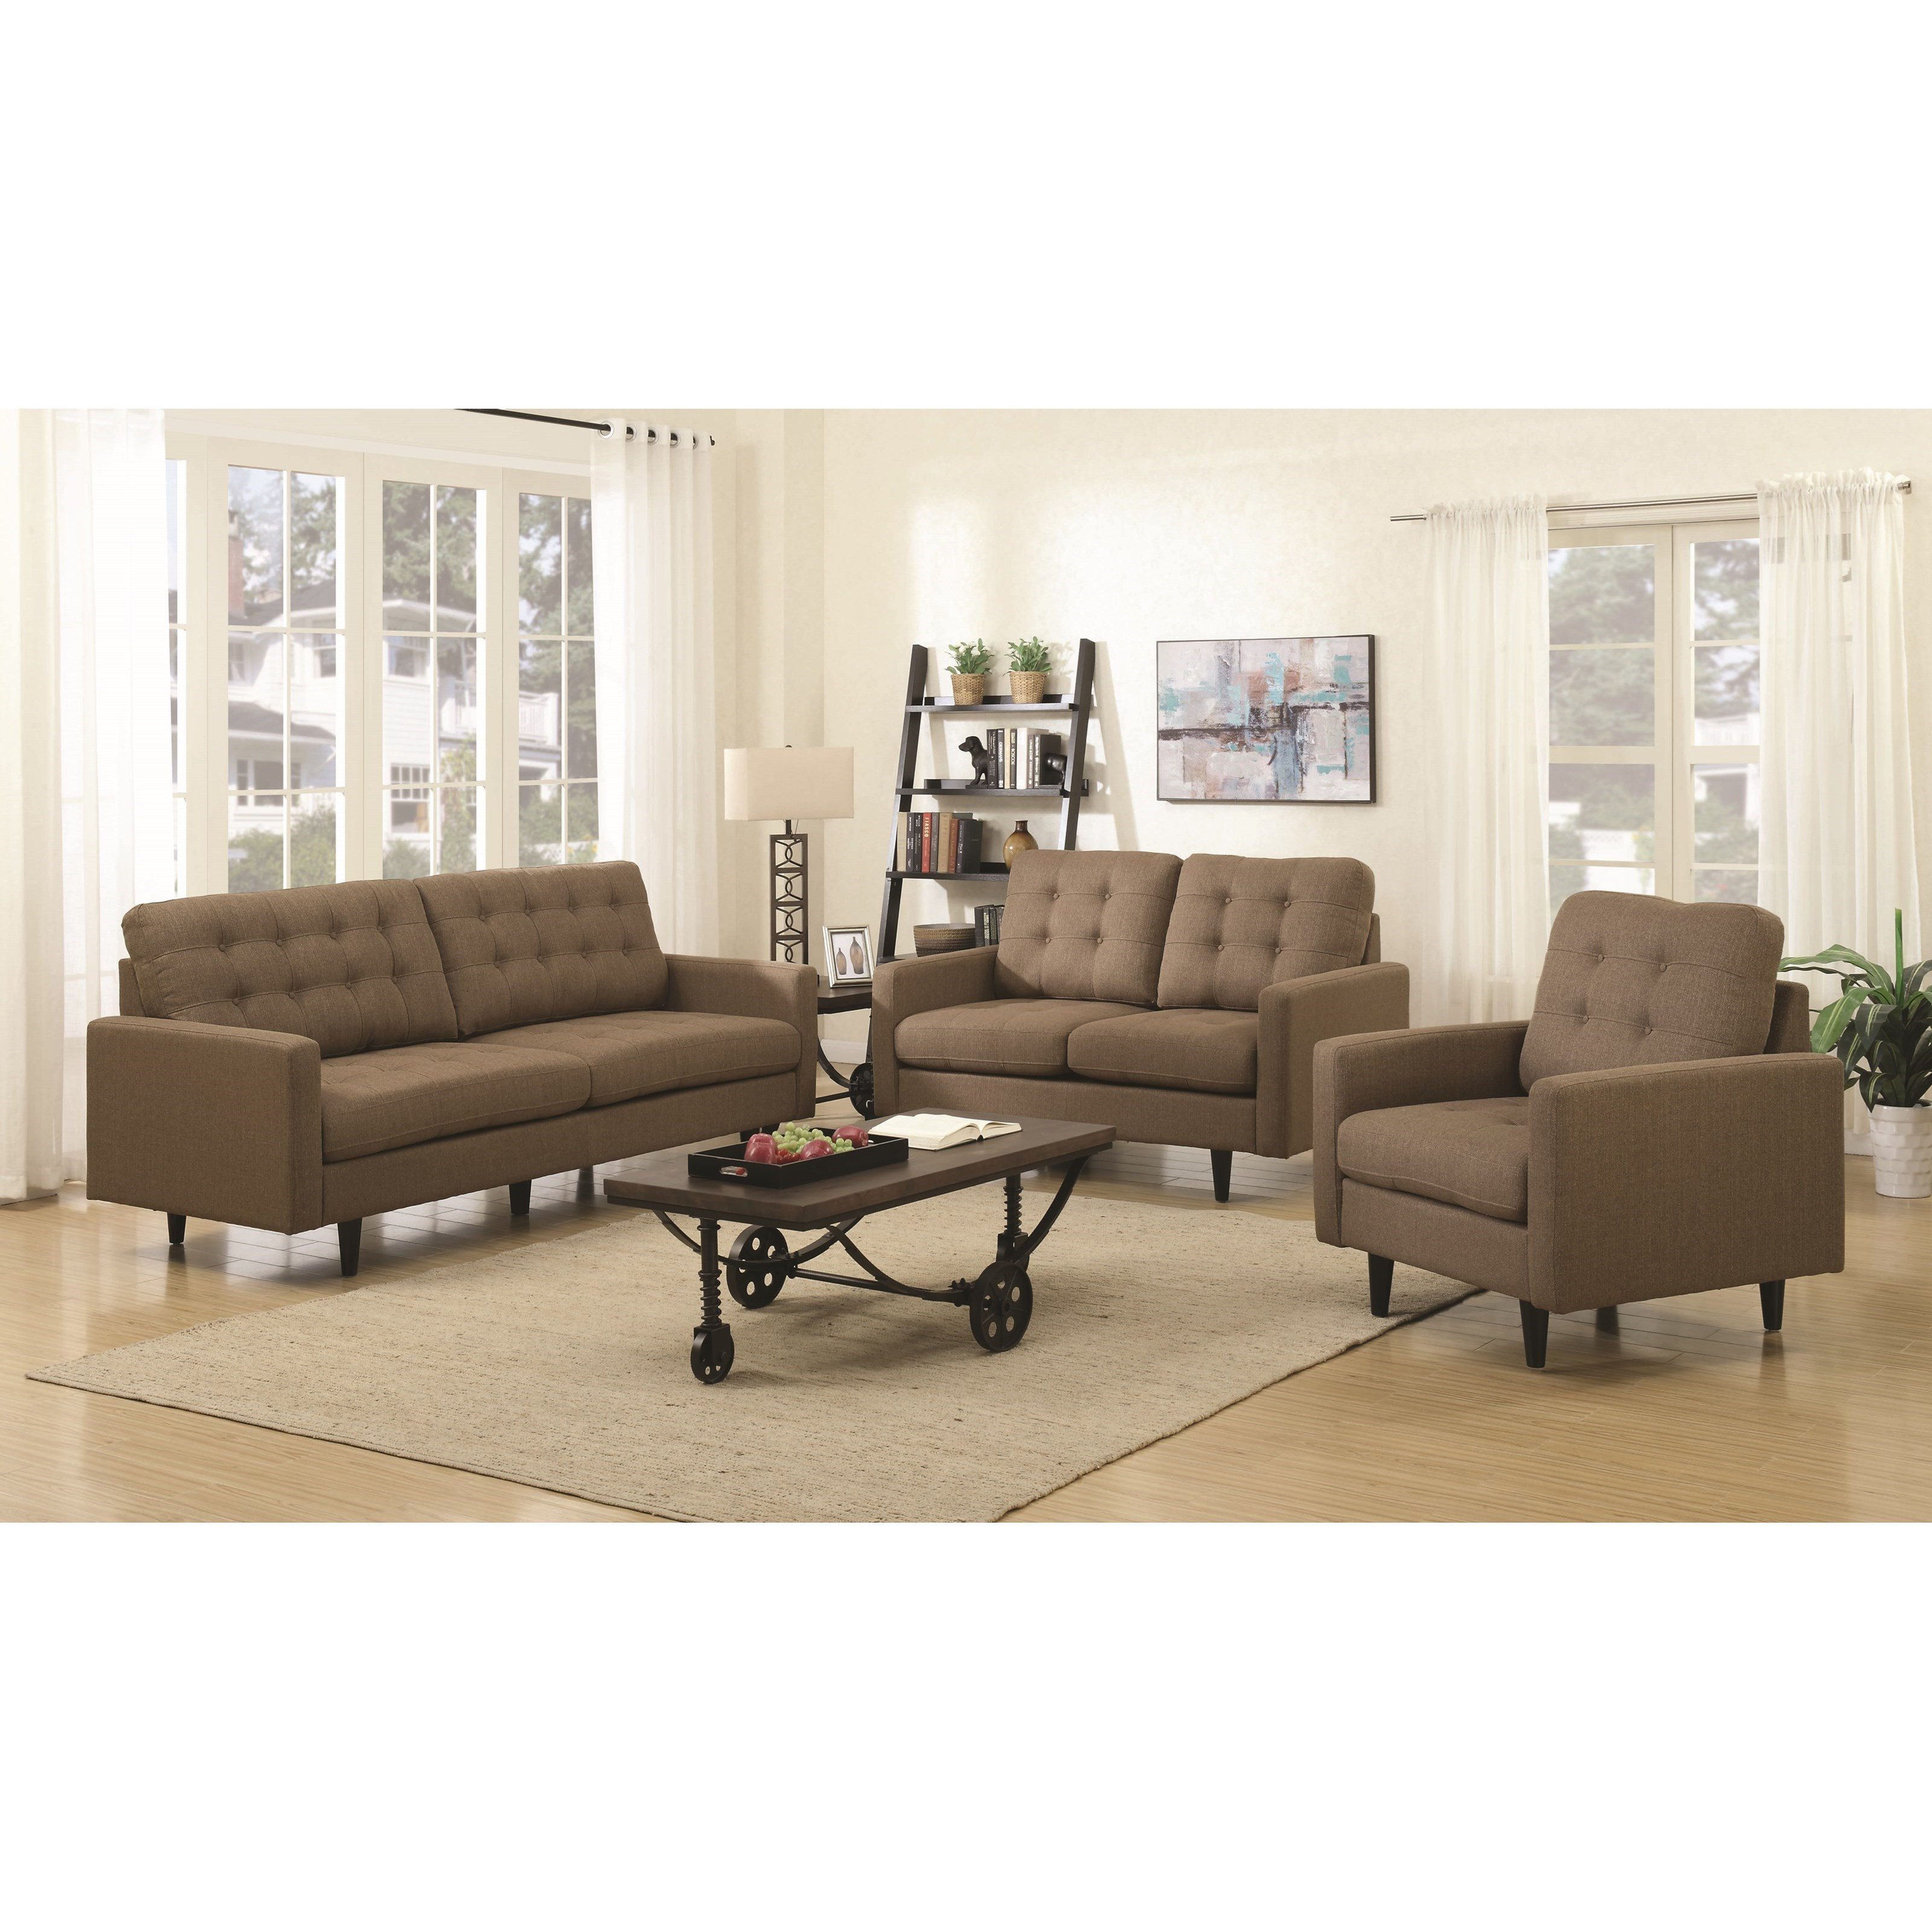 Coaster Kesson Living Room Group - Item Number: 505370 Living Room Group 3